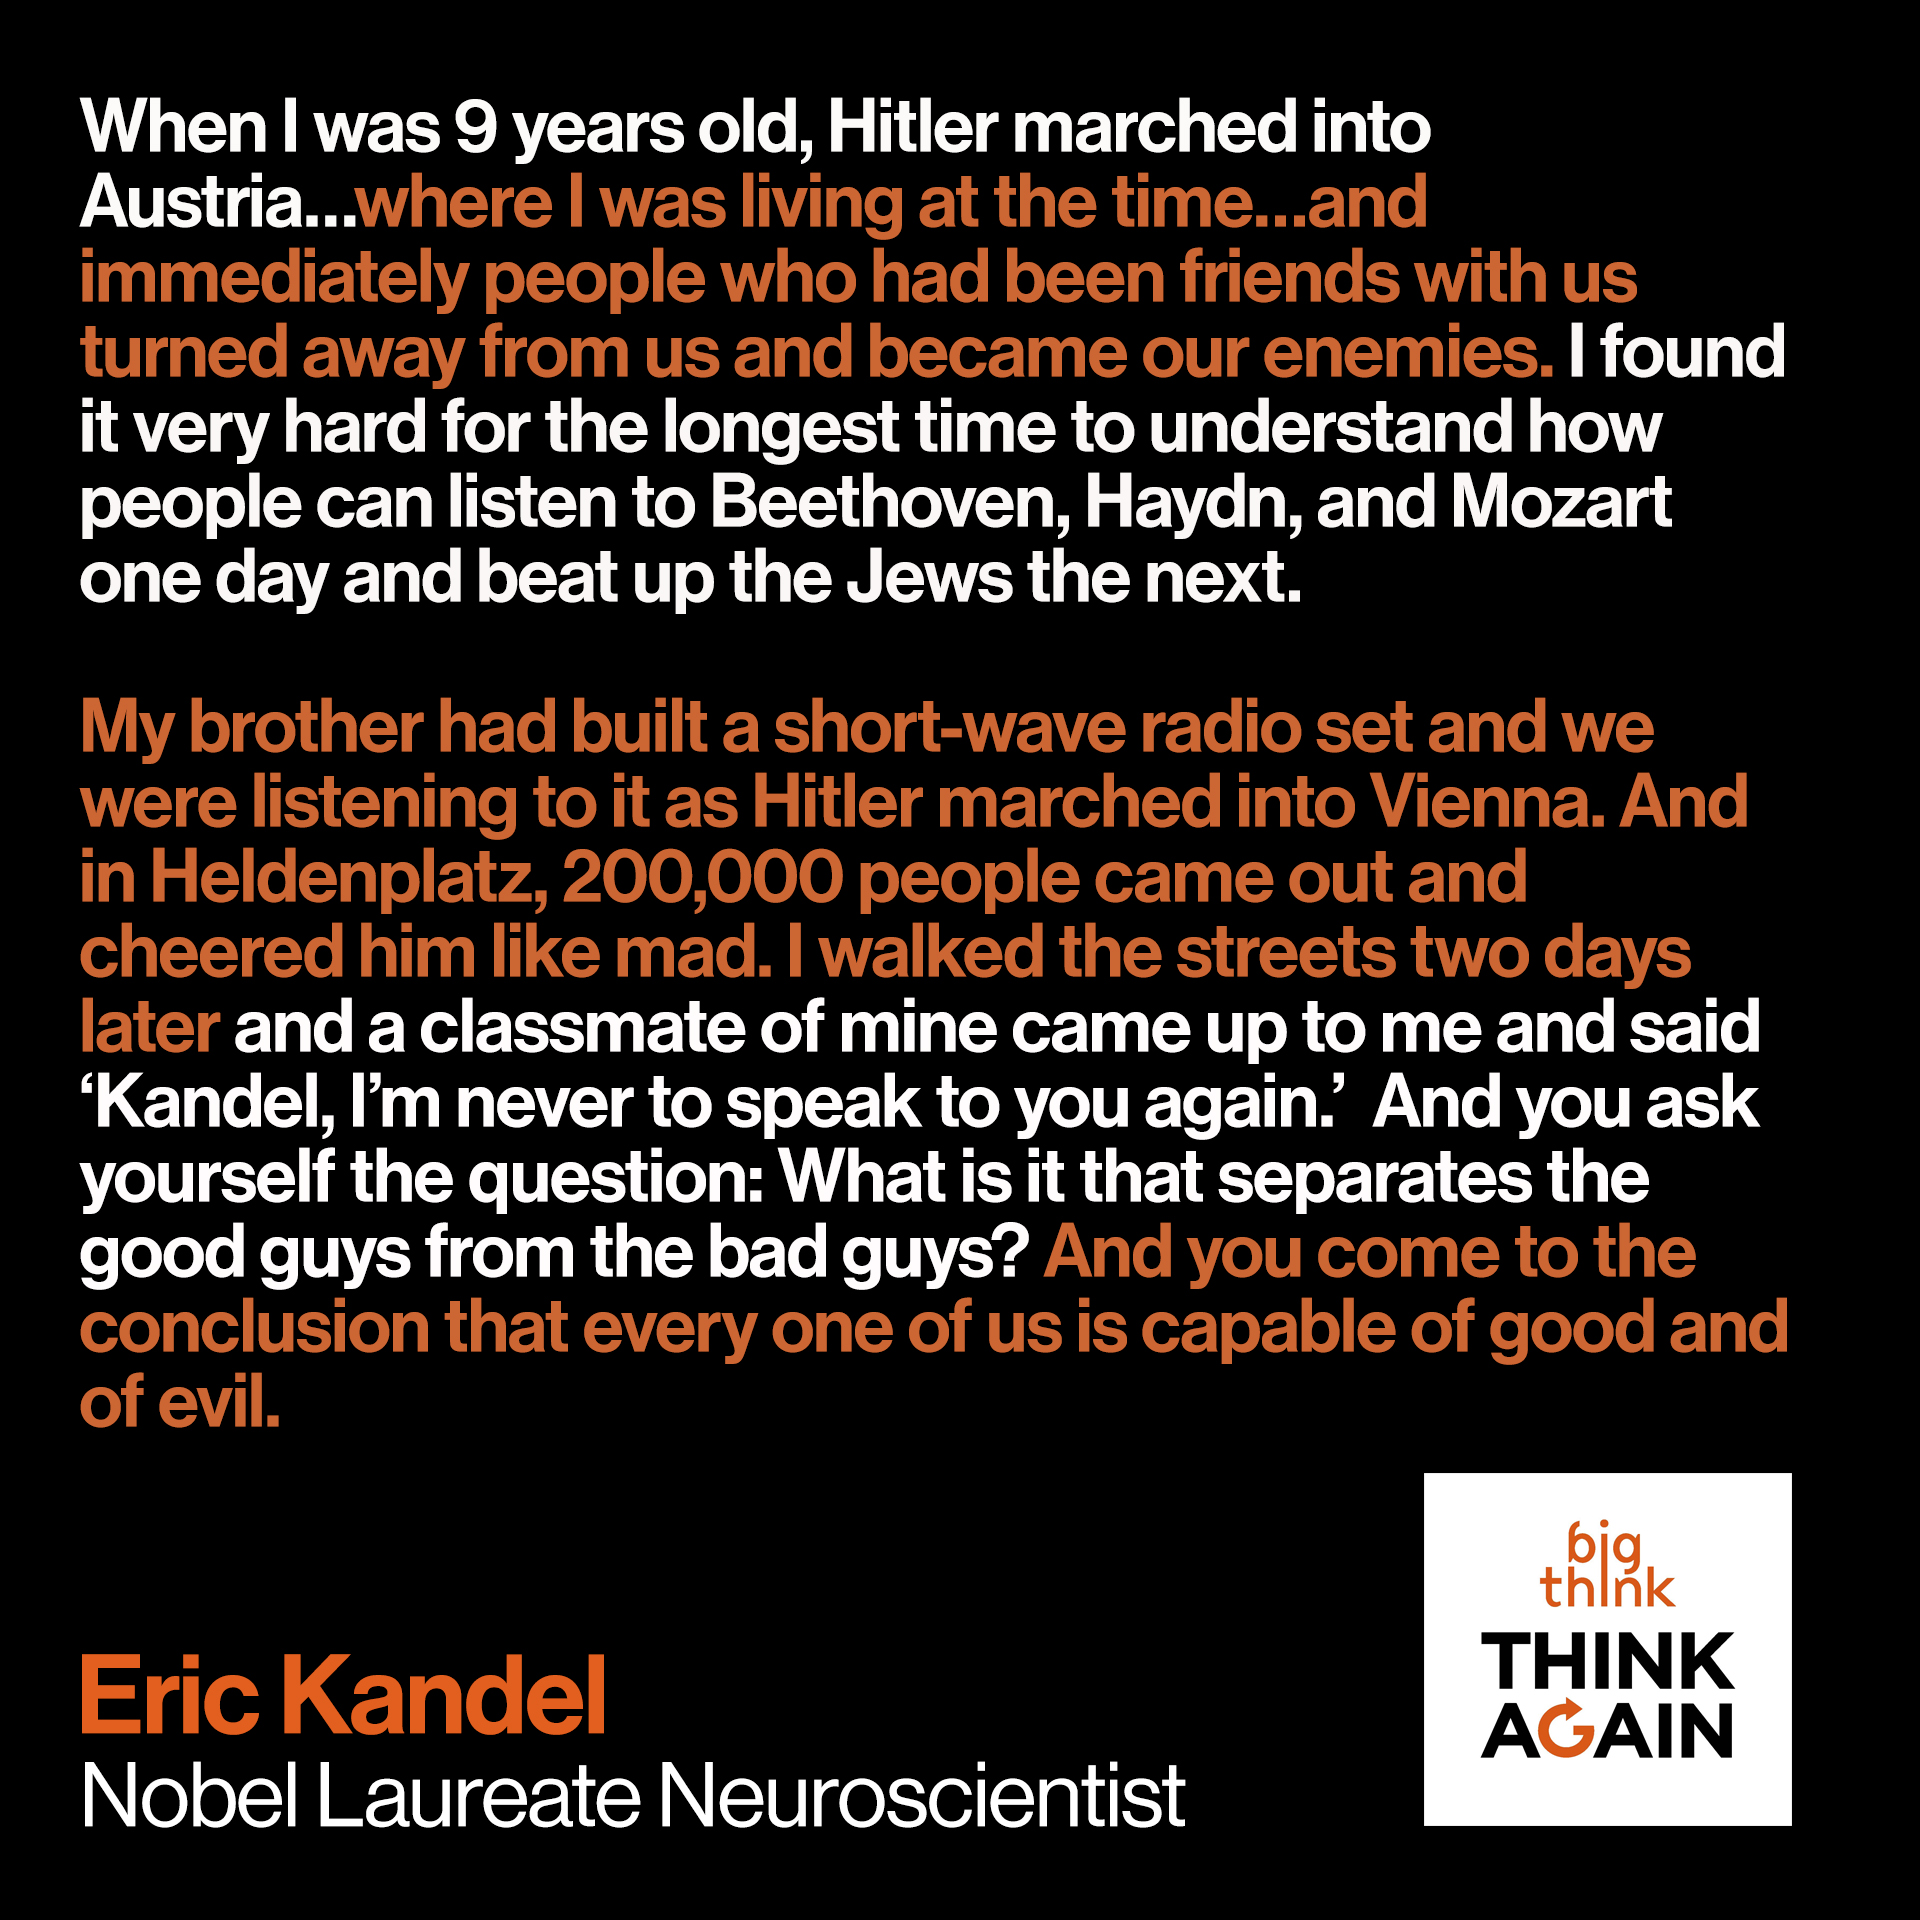 Eric Kandel Quote: When I was 9 years old, Hitler marched into Austria…where I was living at the time…and immediately people who had been friends with us turned away from us and became our enemies. I found it very hard for the longest time to understand how people can listen to Beethoven, Haydn, and Mozart one day and beat up the Jews the next.  My brother had built a short-wave radio set and we were listening to it as Hitler marched into Vienna. And in Heldenplatz, 200,000 people came out and cheered him like mad. I walked the streets two days later and a classmate of mine came up to me and said 'Kandel, I'm never to speak to you again.'  And you ask yourself the question: What is it that separates the good guys from the bad guys? And you come to the conclusion that every one of us is capable of good and of evil.